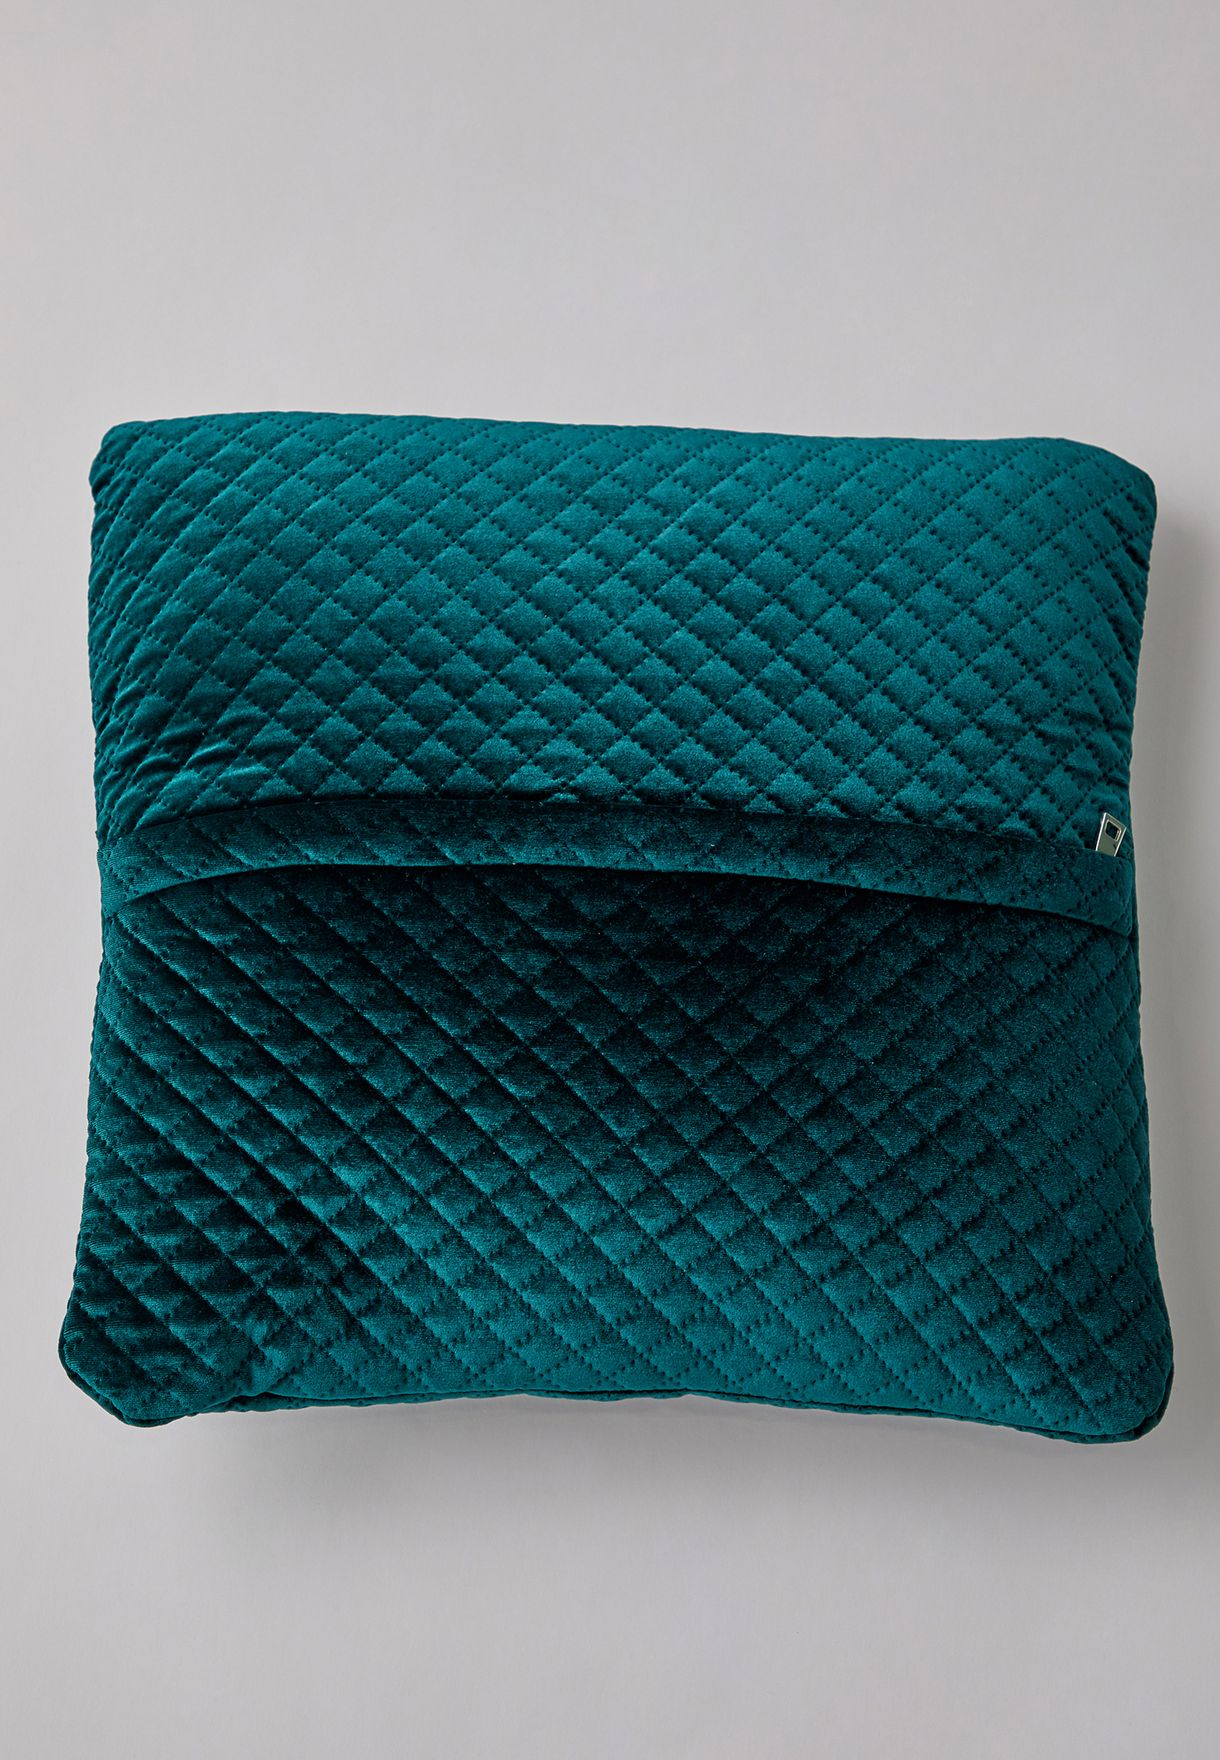 Green Soft Cushion With Insert 45x45 cm